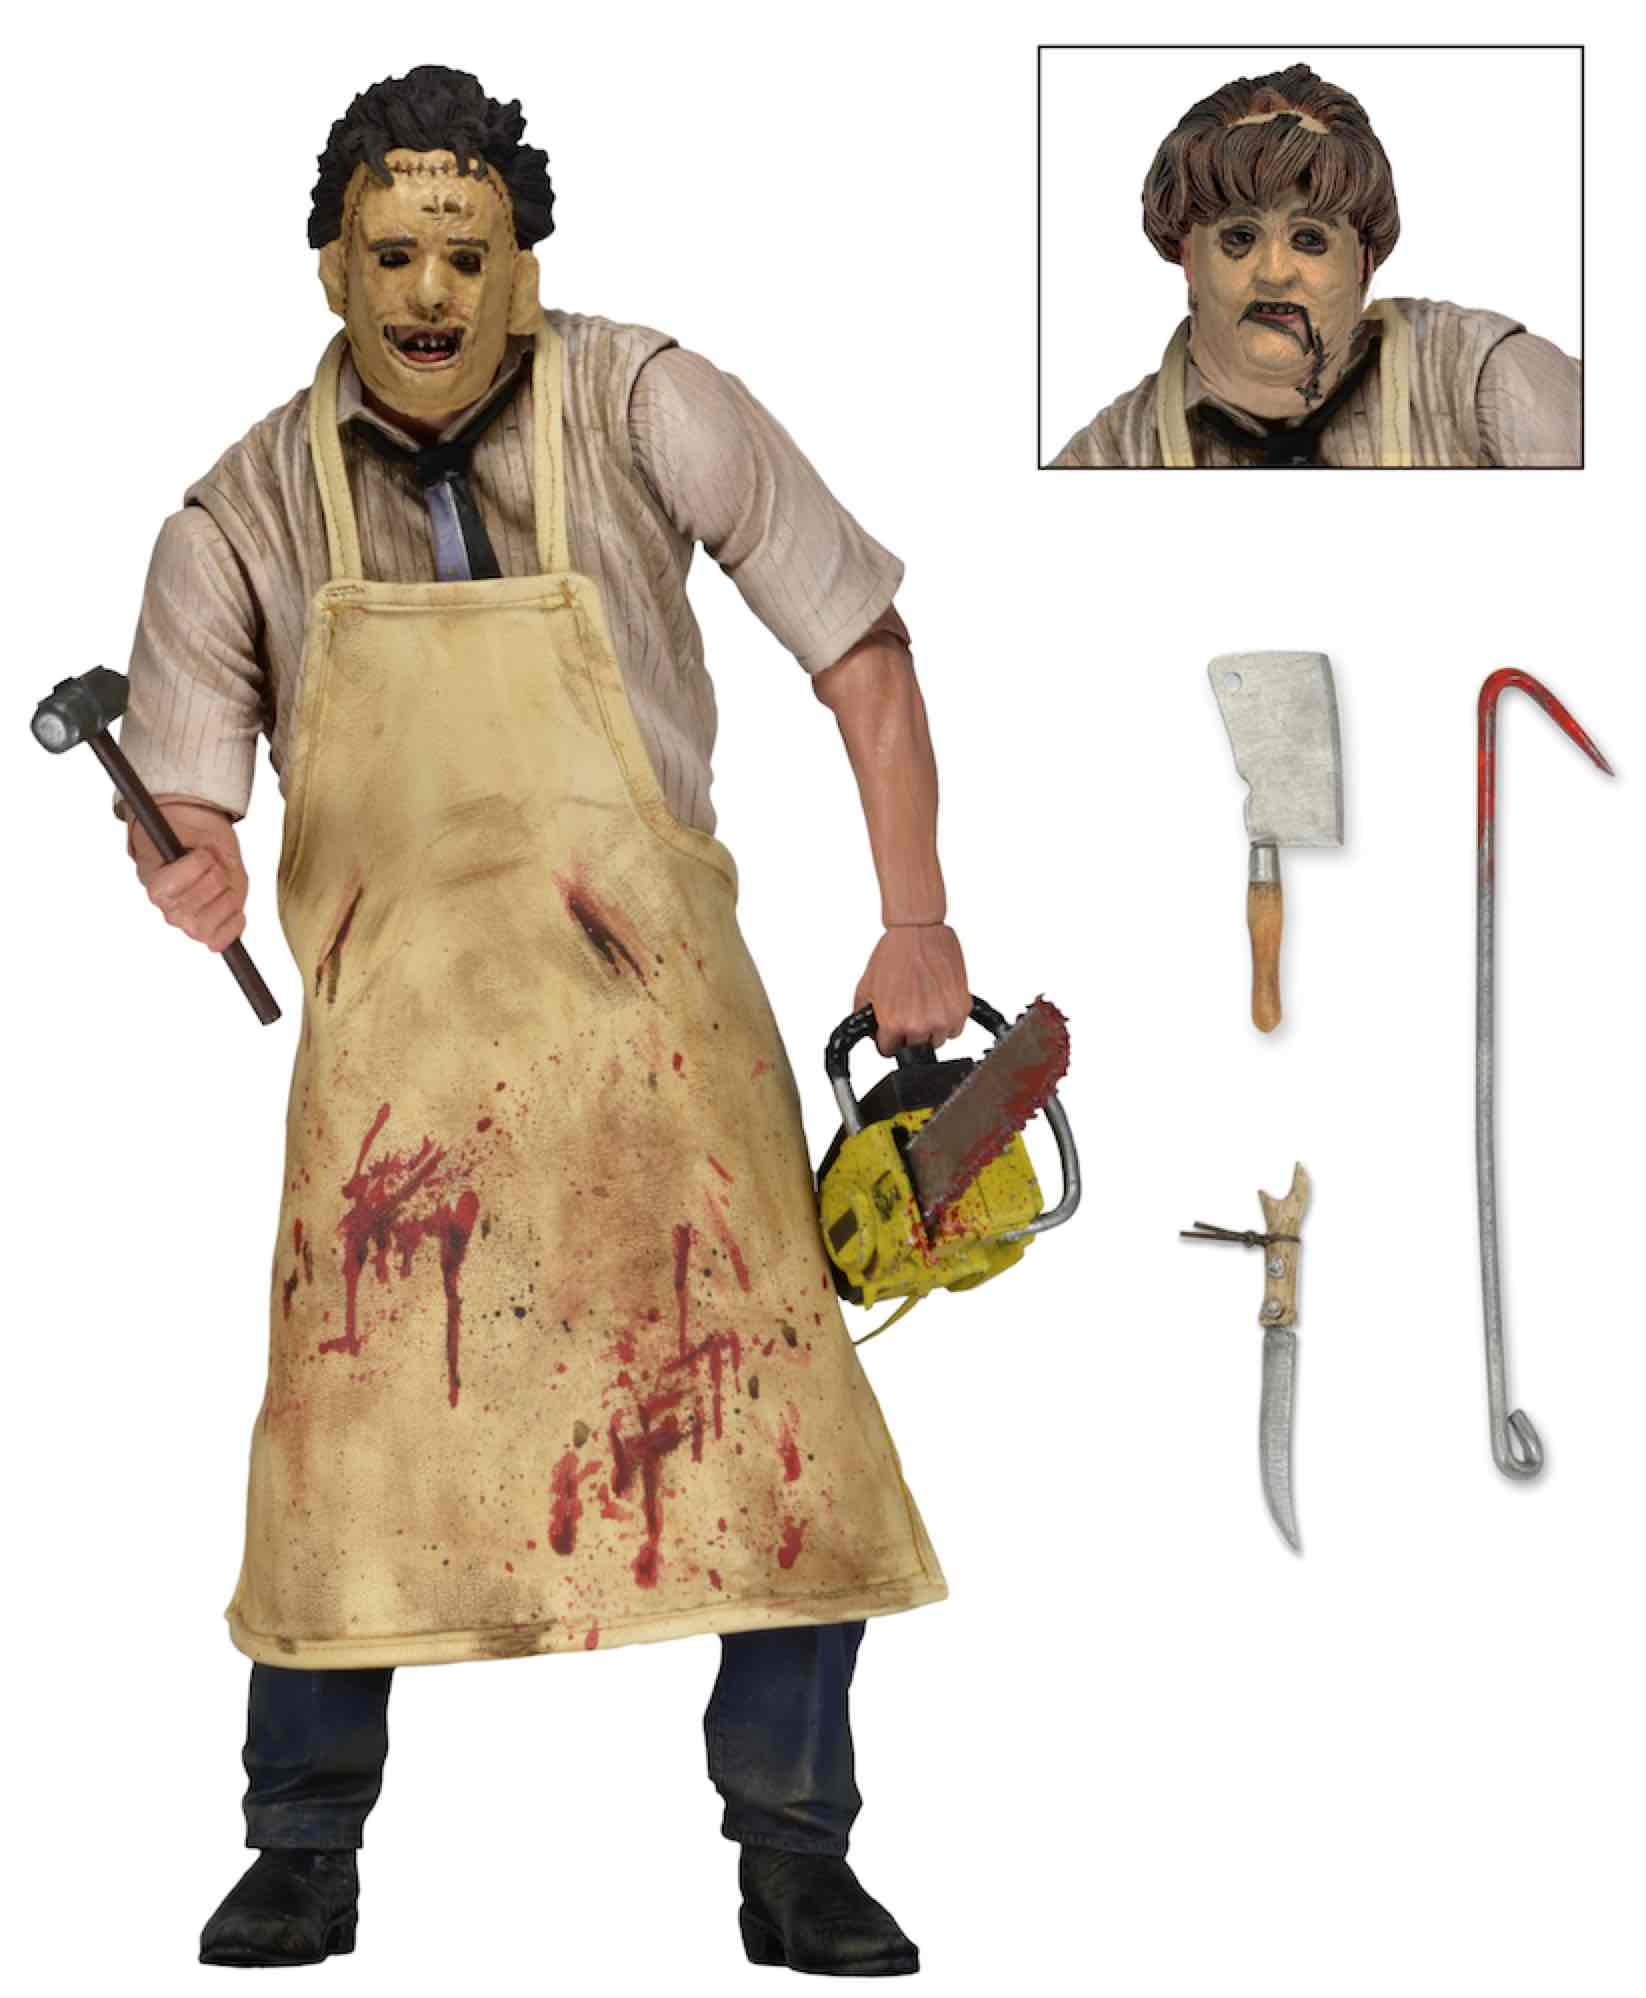 ULTIMATE LEATHERFACE FIGURA 18 CM TEXAS CHAINSAW MASACRE